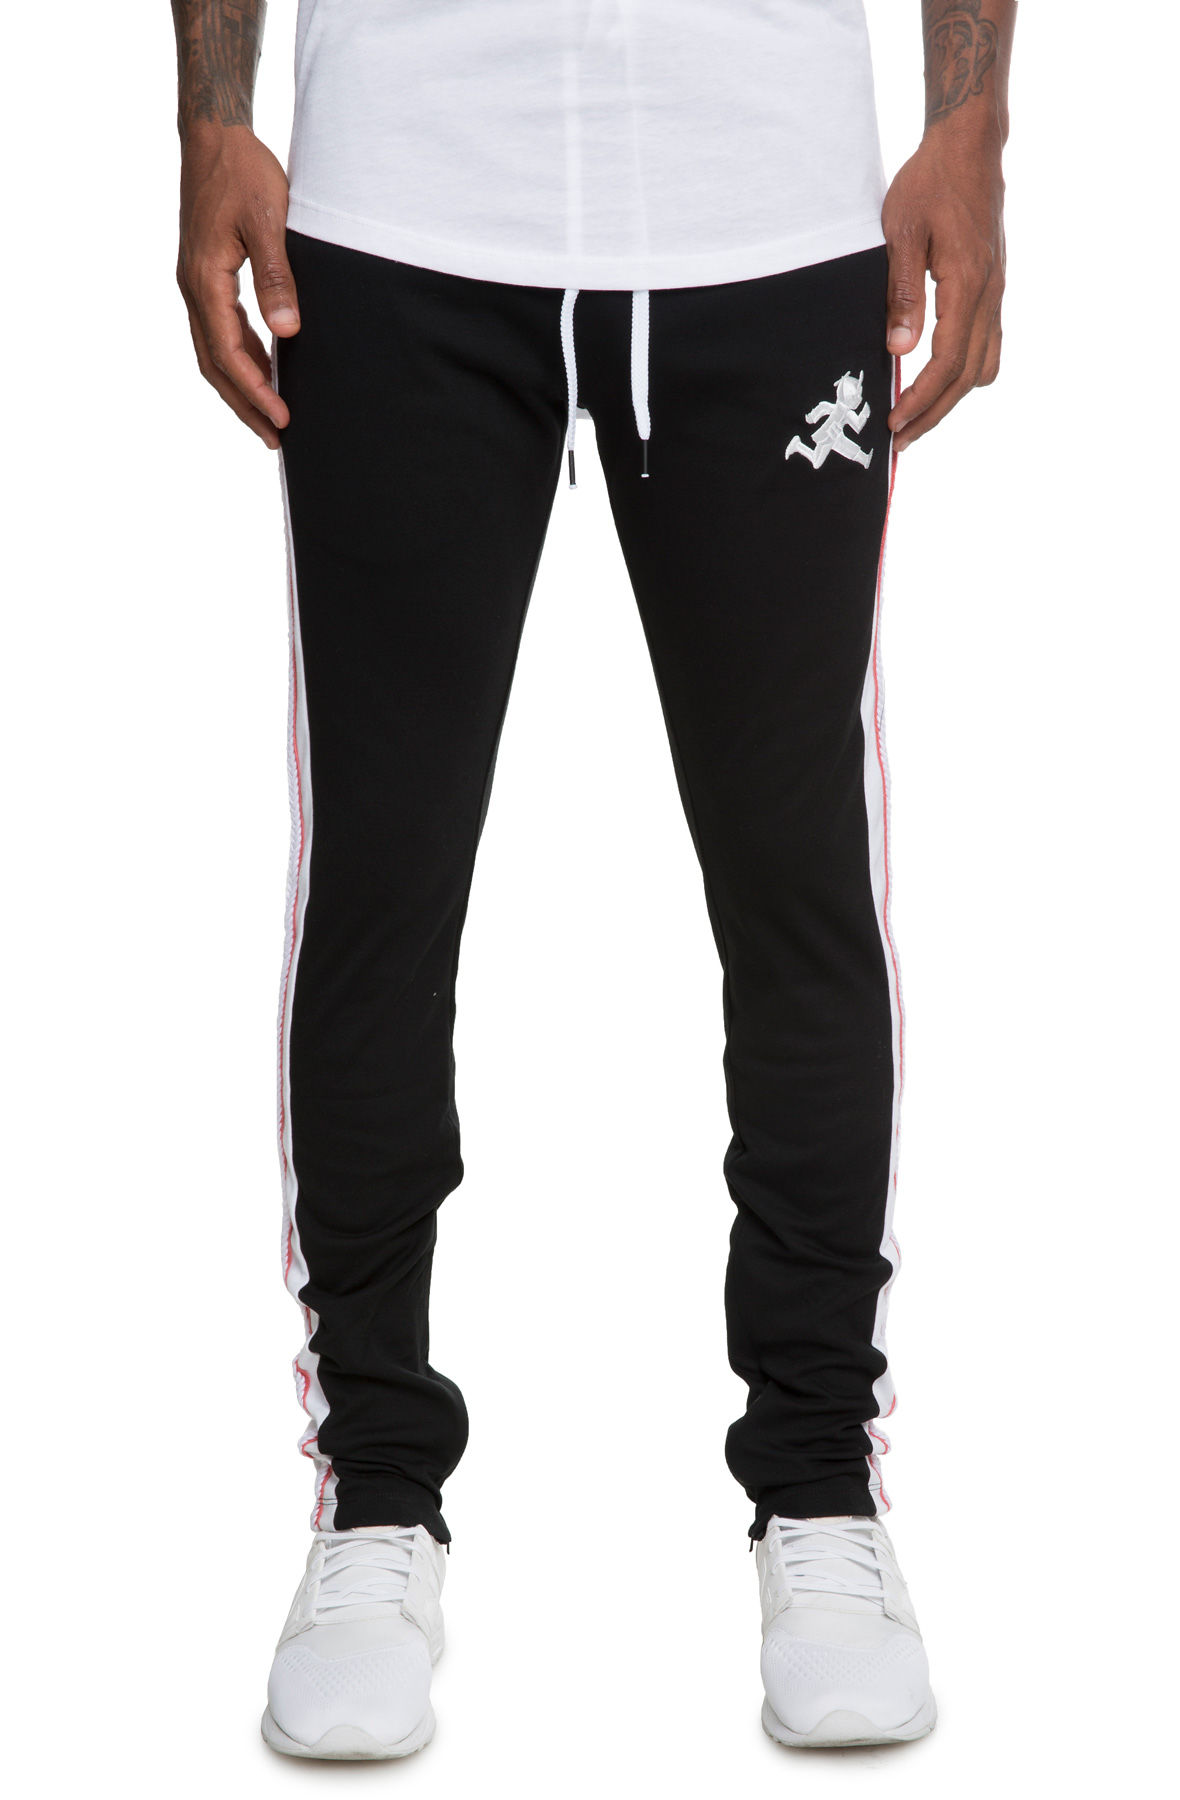 Image of The Kendo Track Pants in Black